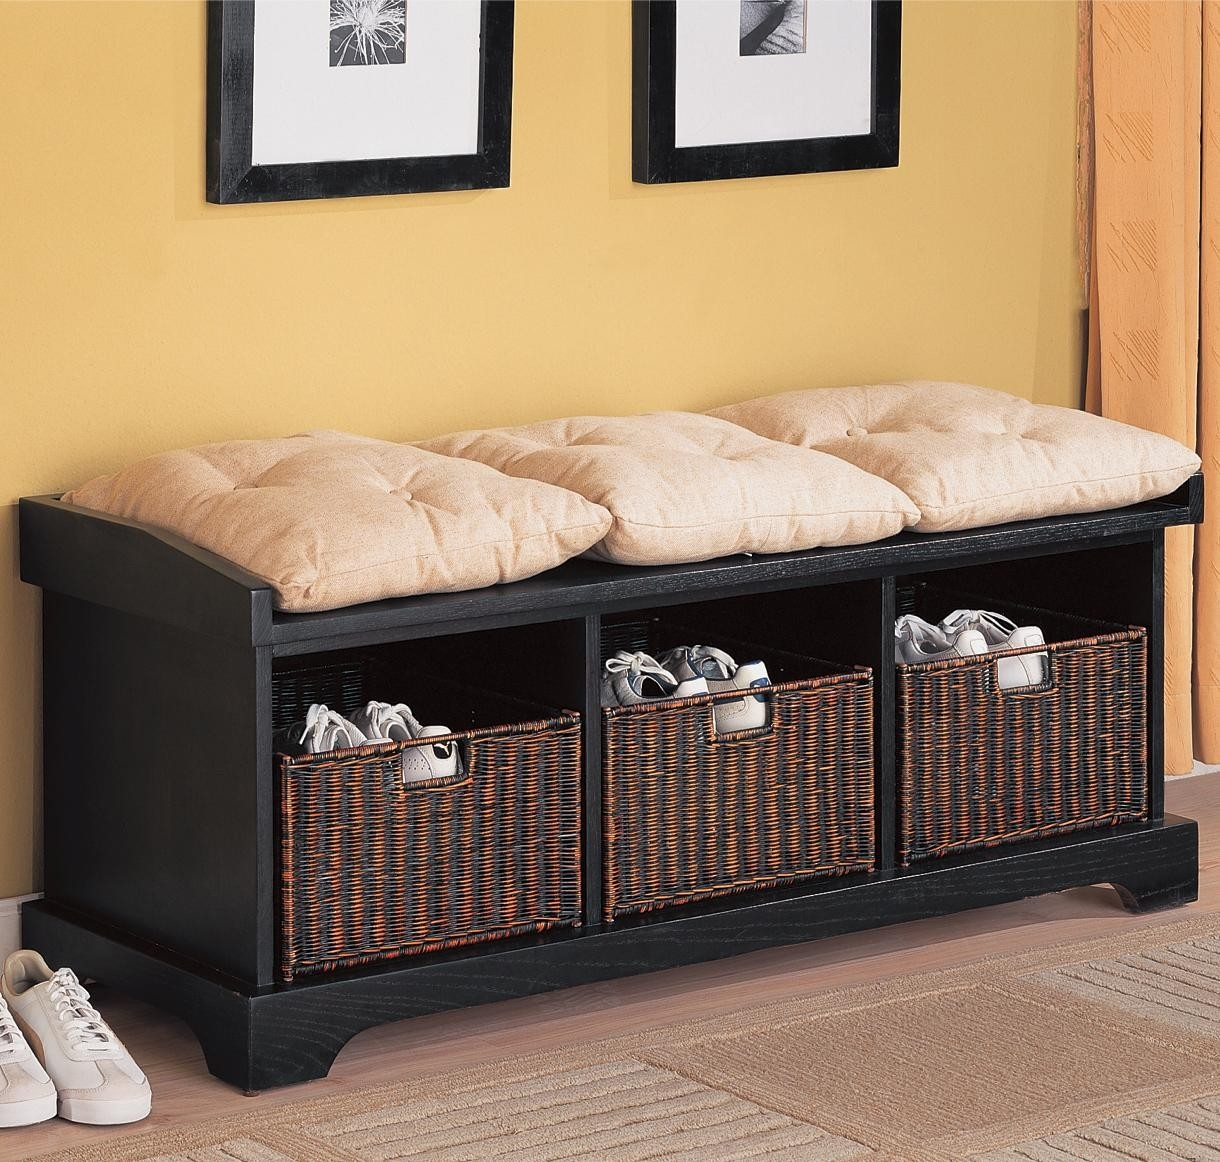 Bedroom Bench With Shoe Storage Benches For The Design At Foot Of Bed End Black Entryway Small Seat Window Upholstered Apppie Org